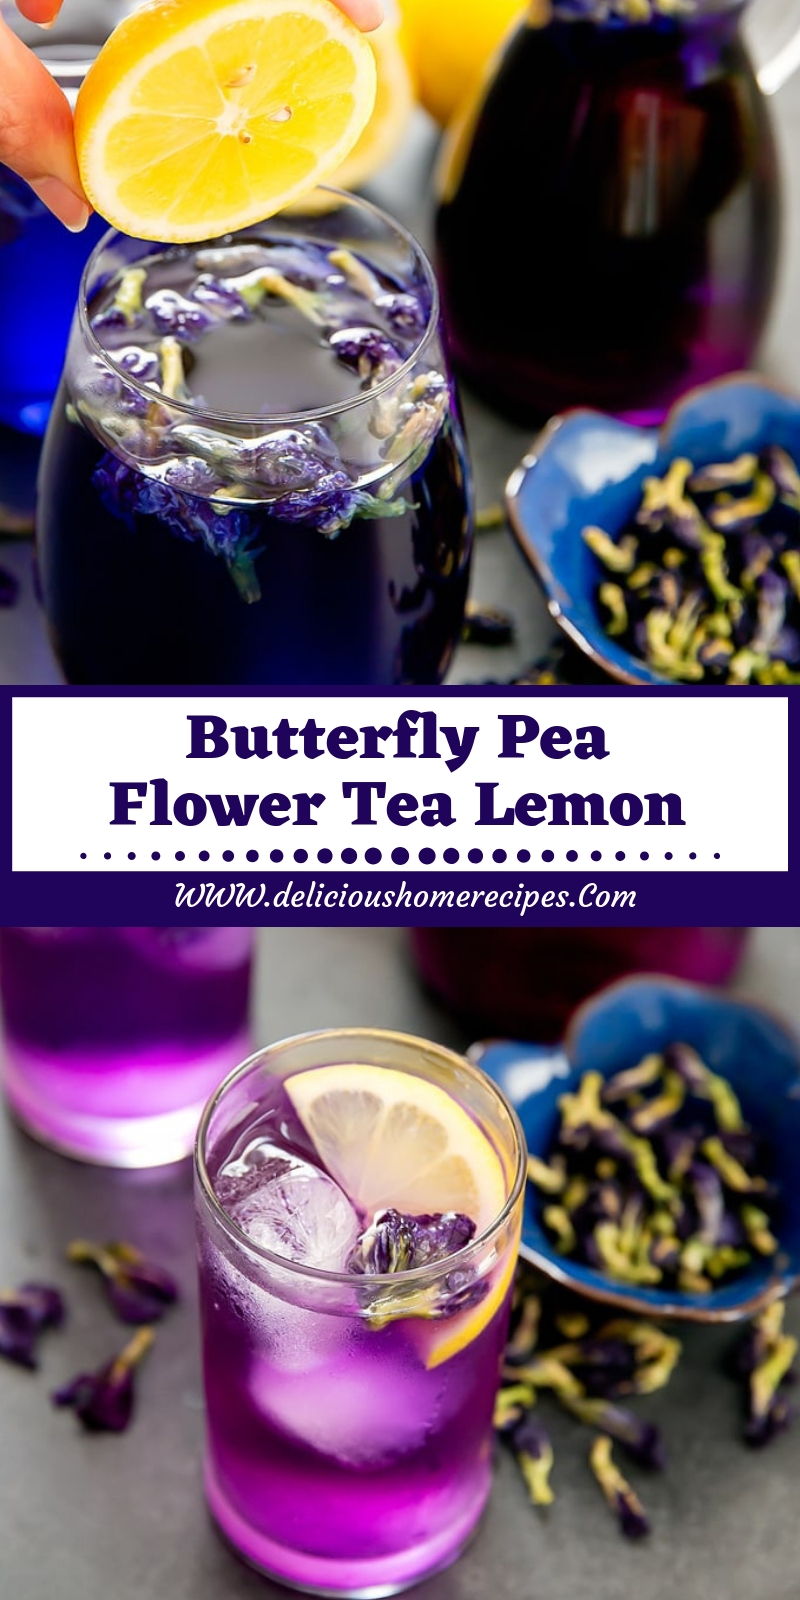 Butterfly Pea Flower Tea Lemon